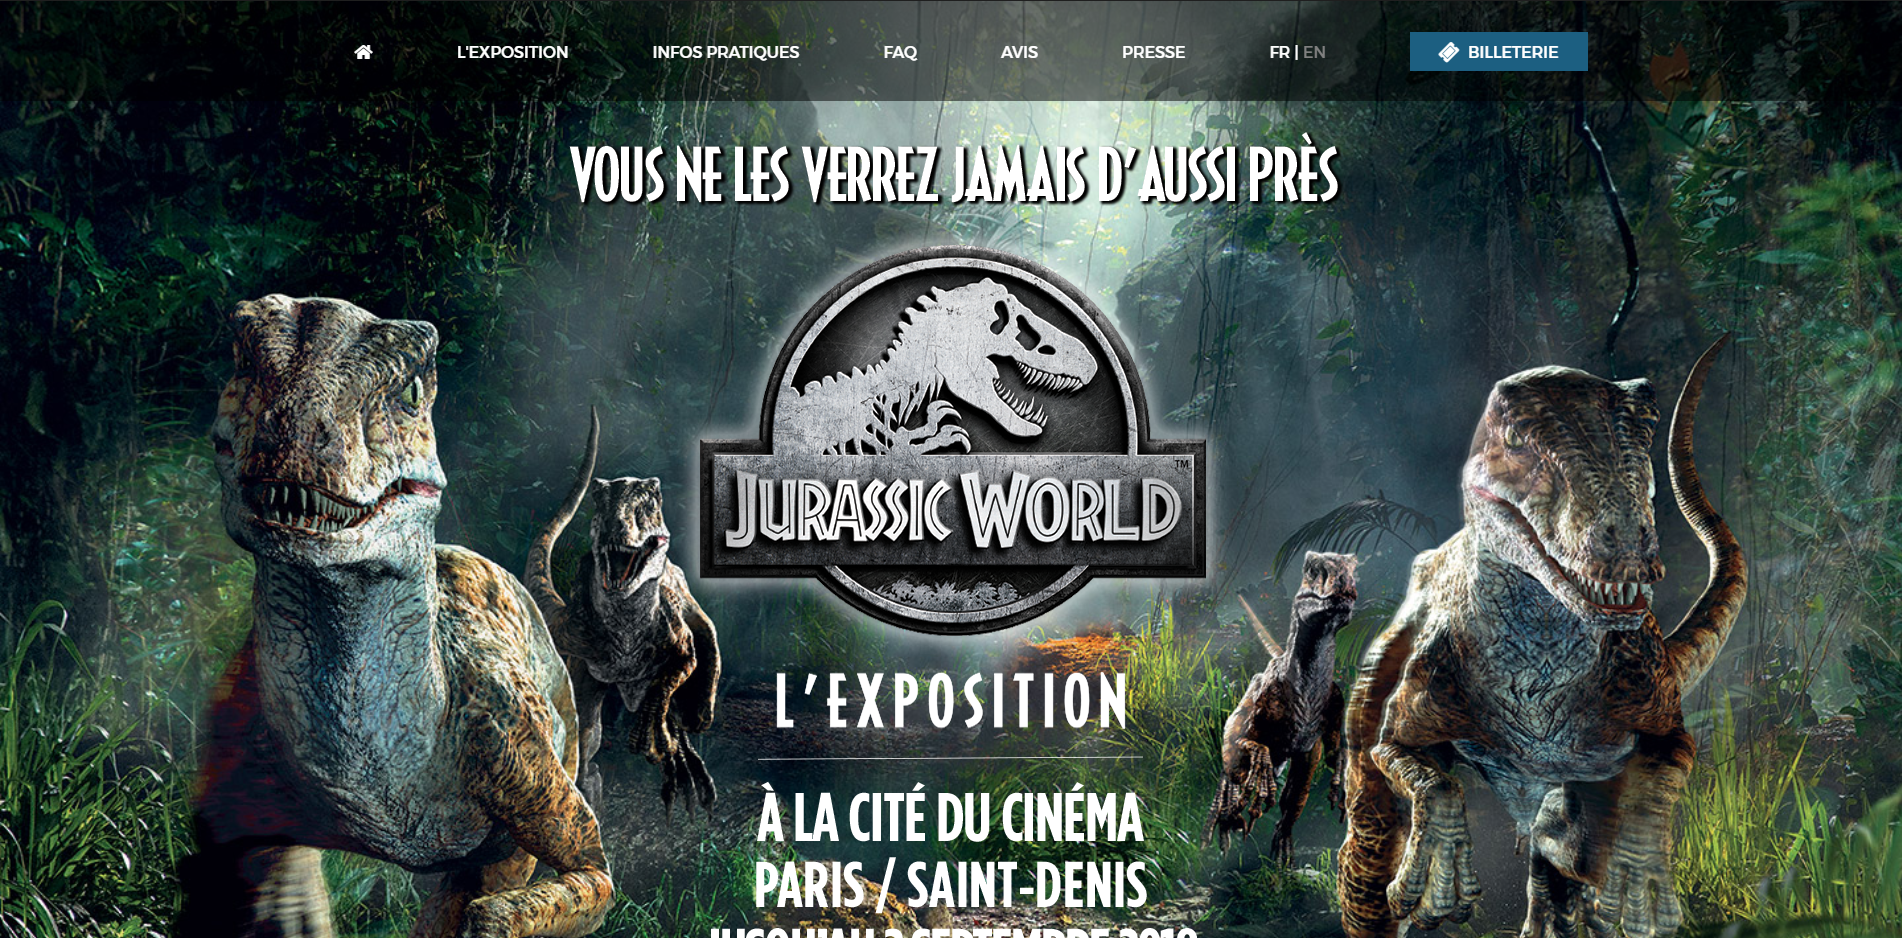 Jurrassic World